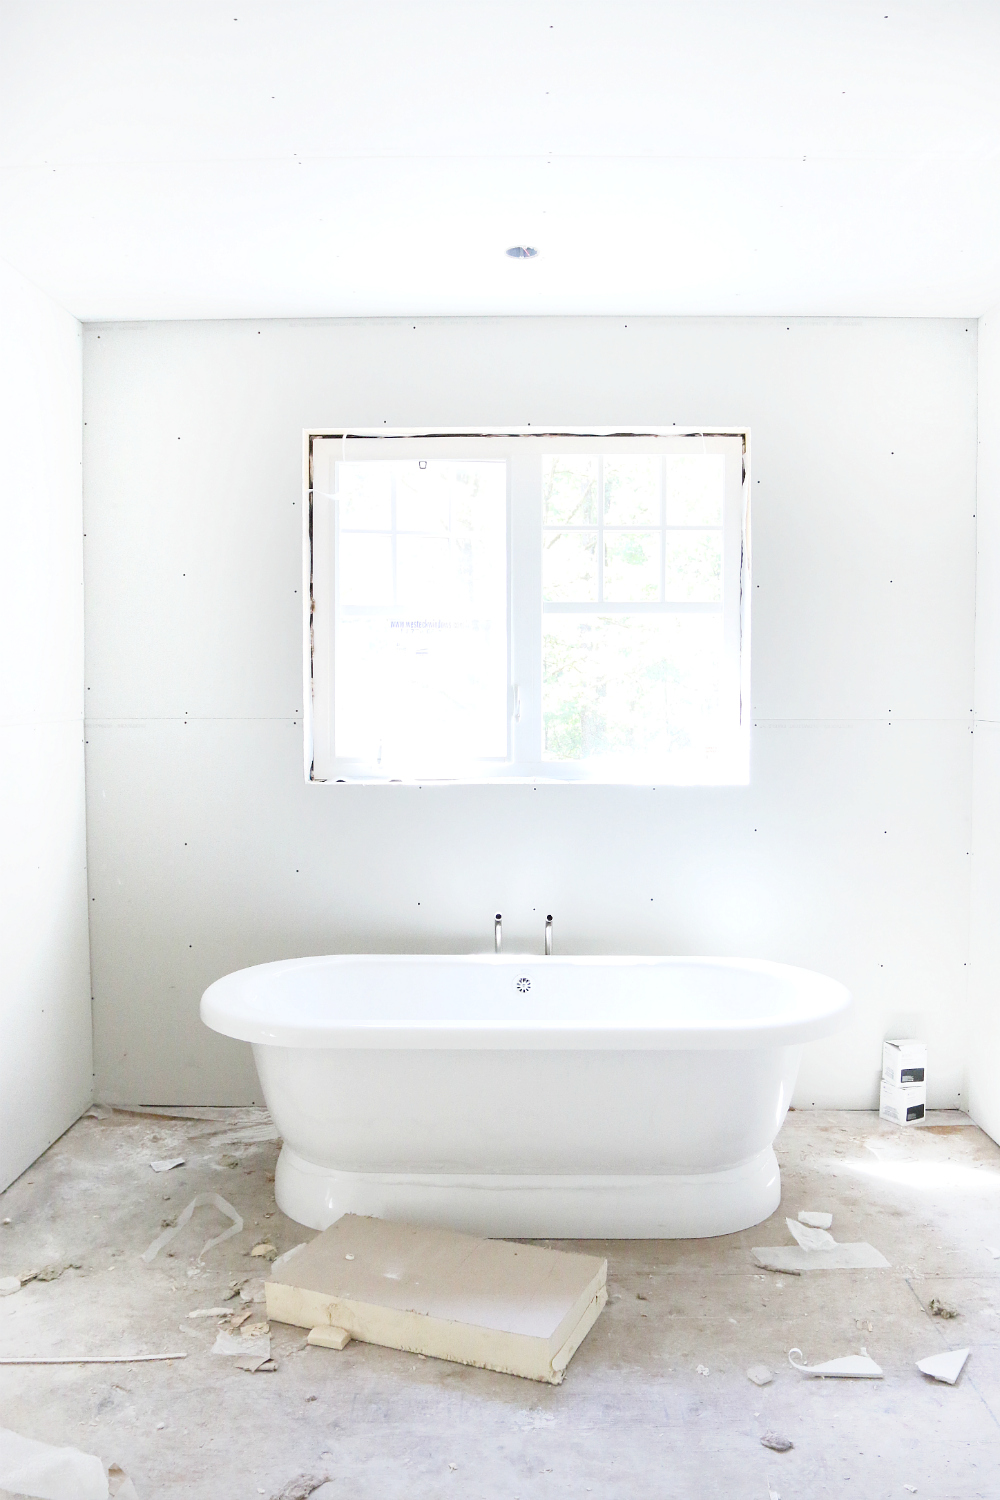 Building Series: Dry Wall Ensuite